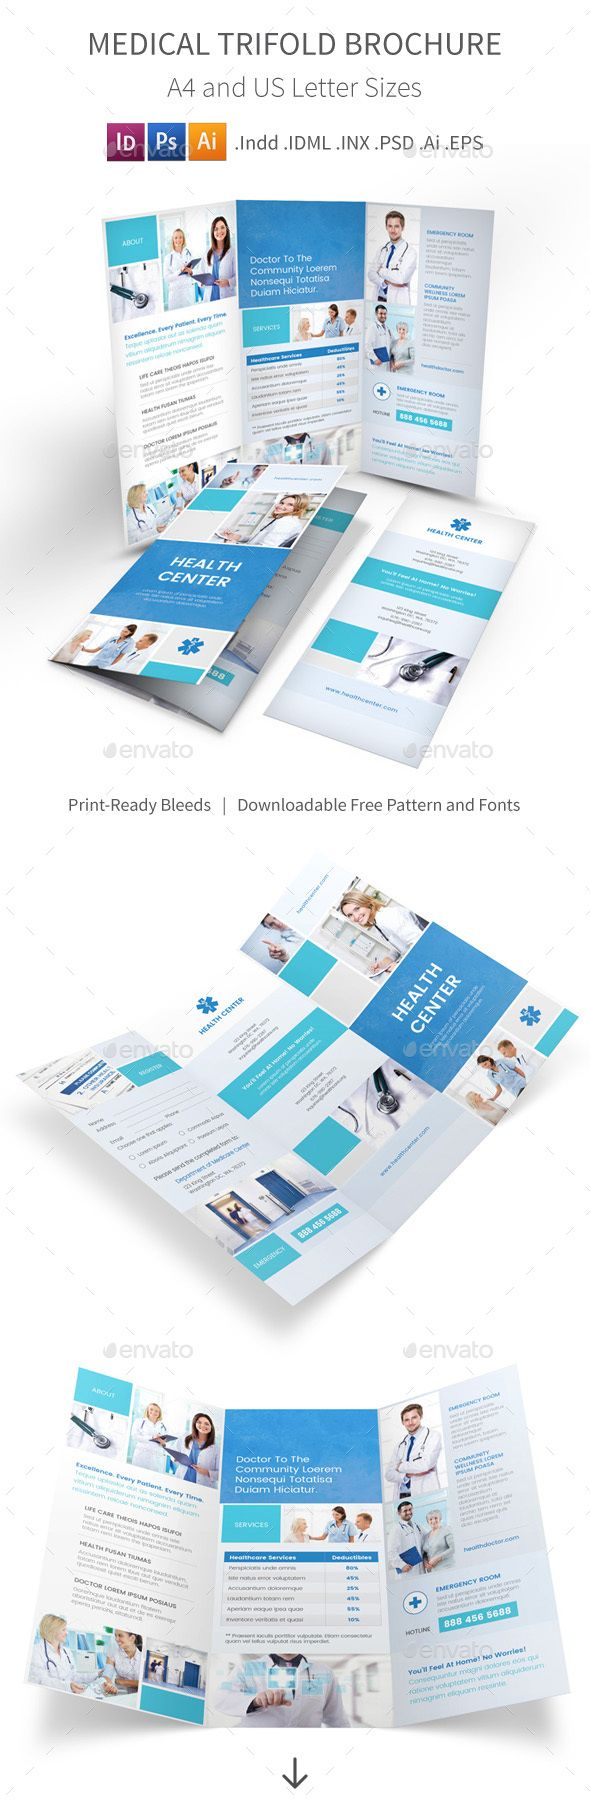 31 Best Radiology Brochure Design Images On Pinterest